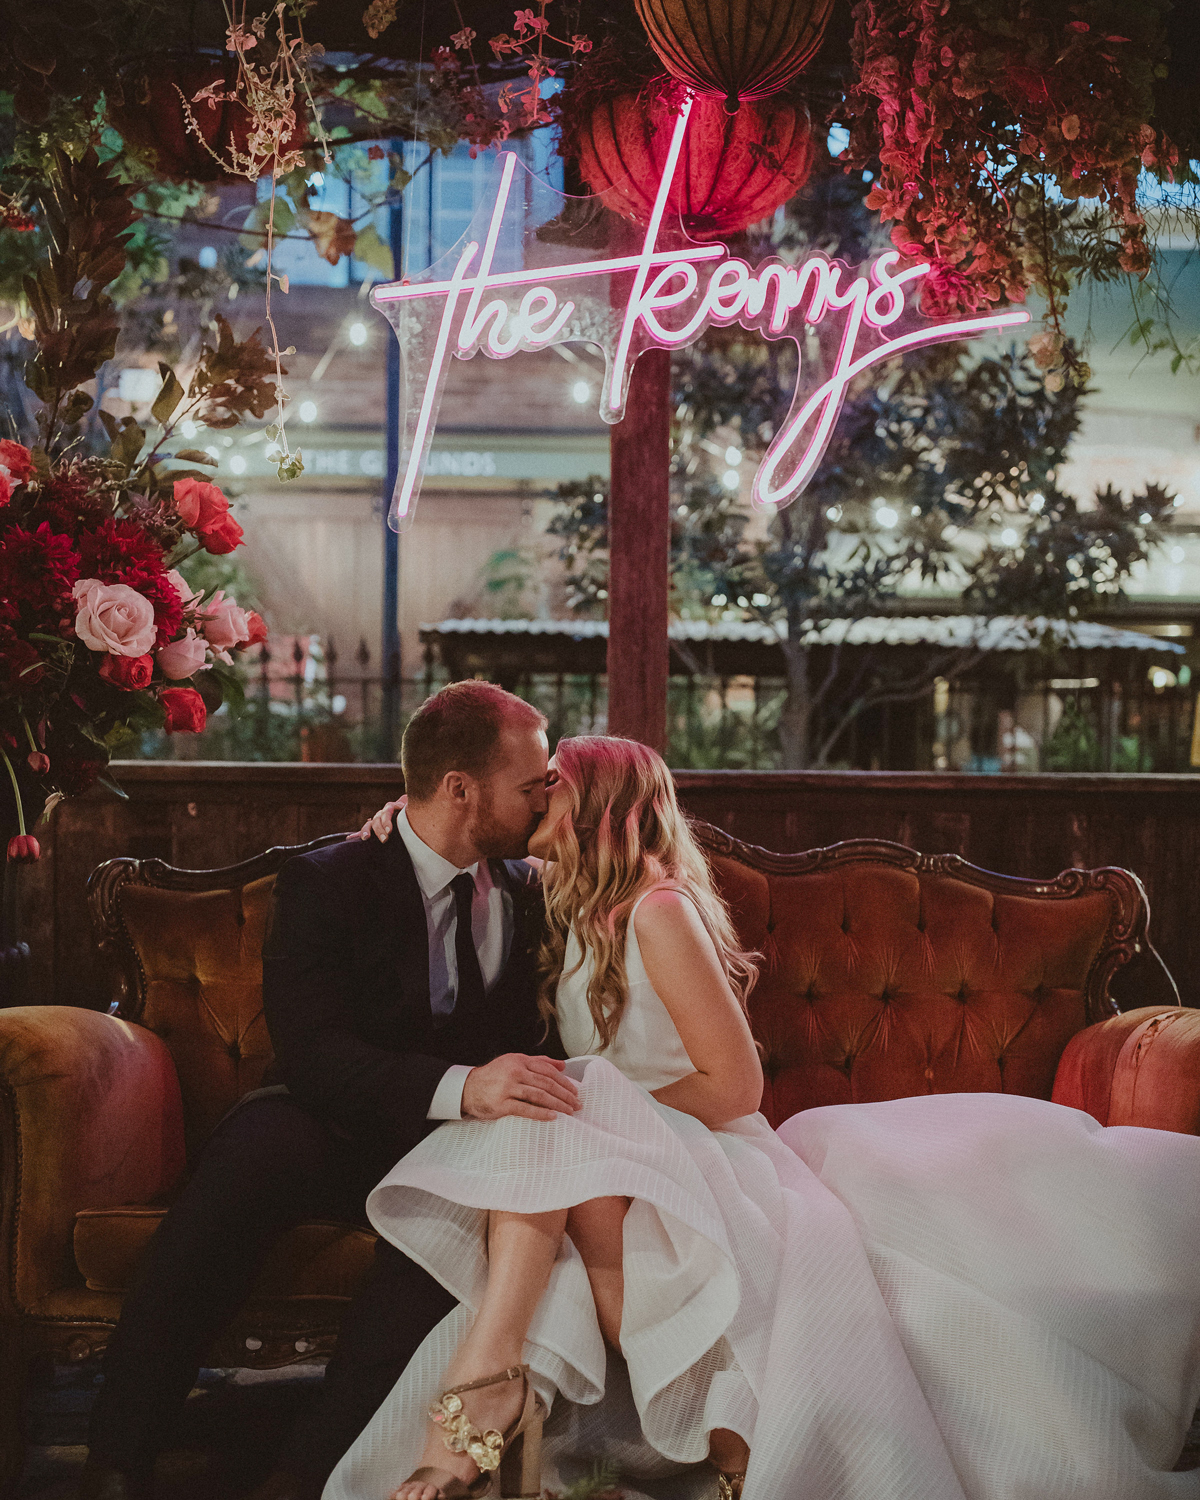 wedding after party bride and groom kissing on couch beneath neon sign